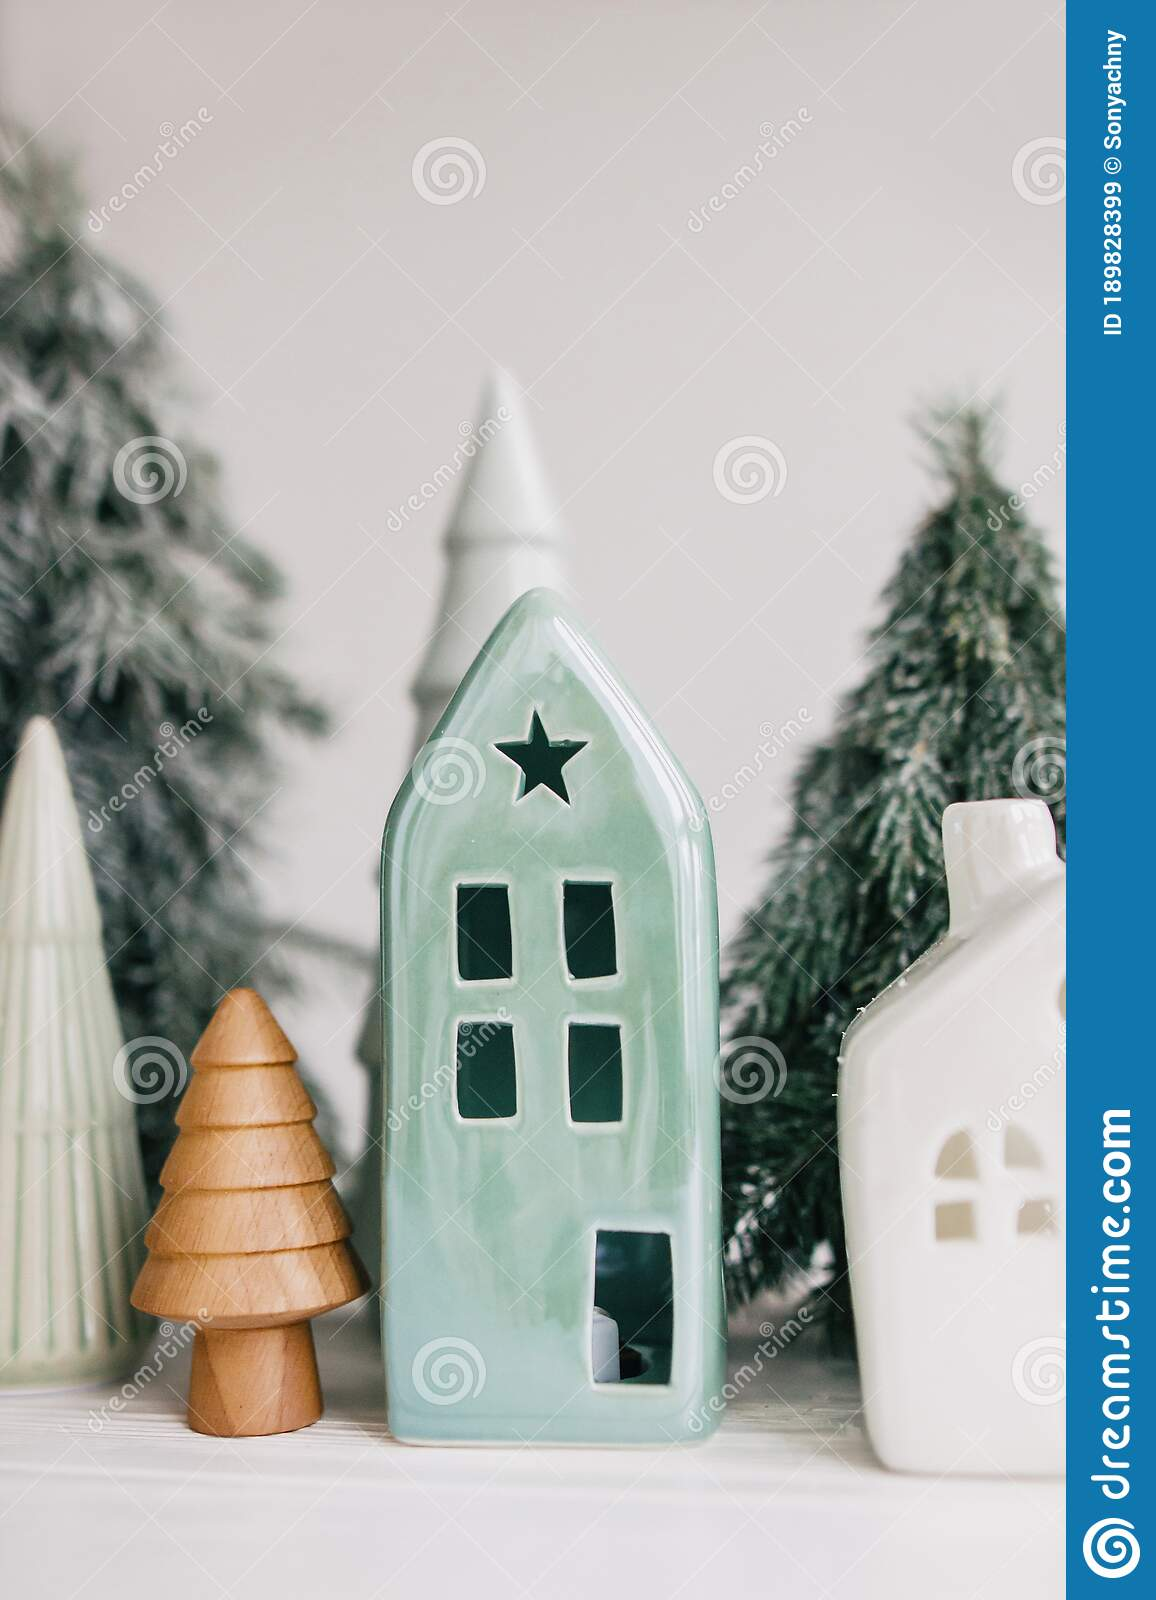 Christmas Little Houses And Trees On White Background Holiday Festive Decor Miniature Village Ceramic Houses Wooden Christmas Stock Image Image Of Green Miniature 189828399